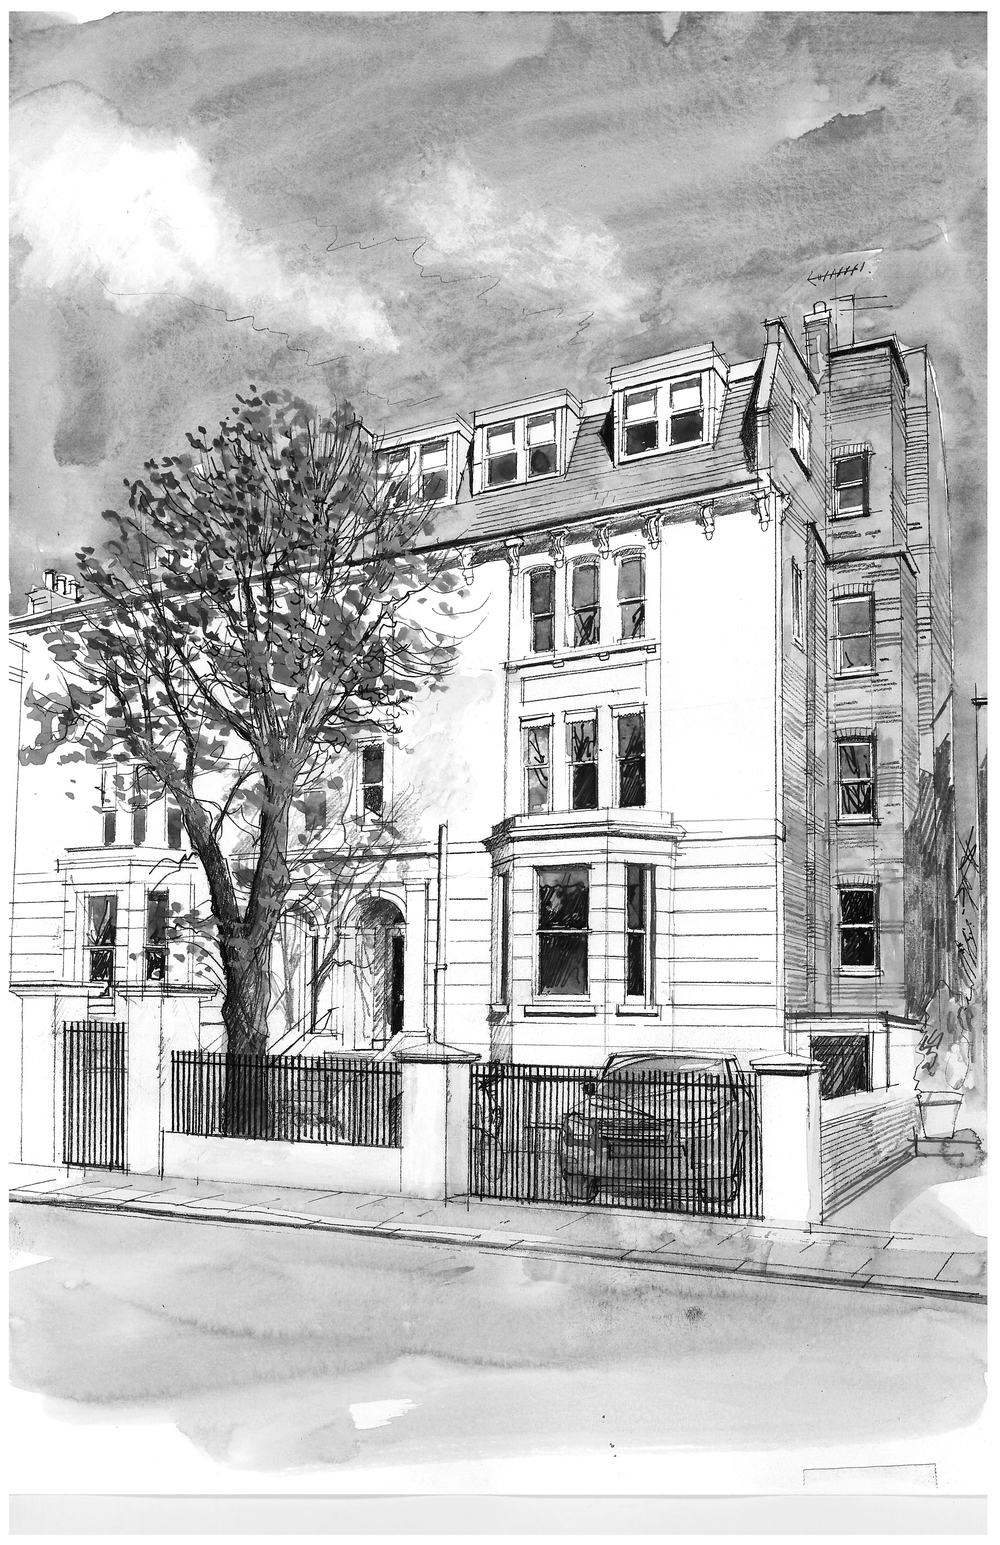 watercolour_front elevation_bw.jpg